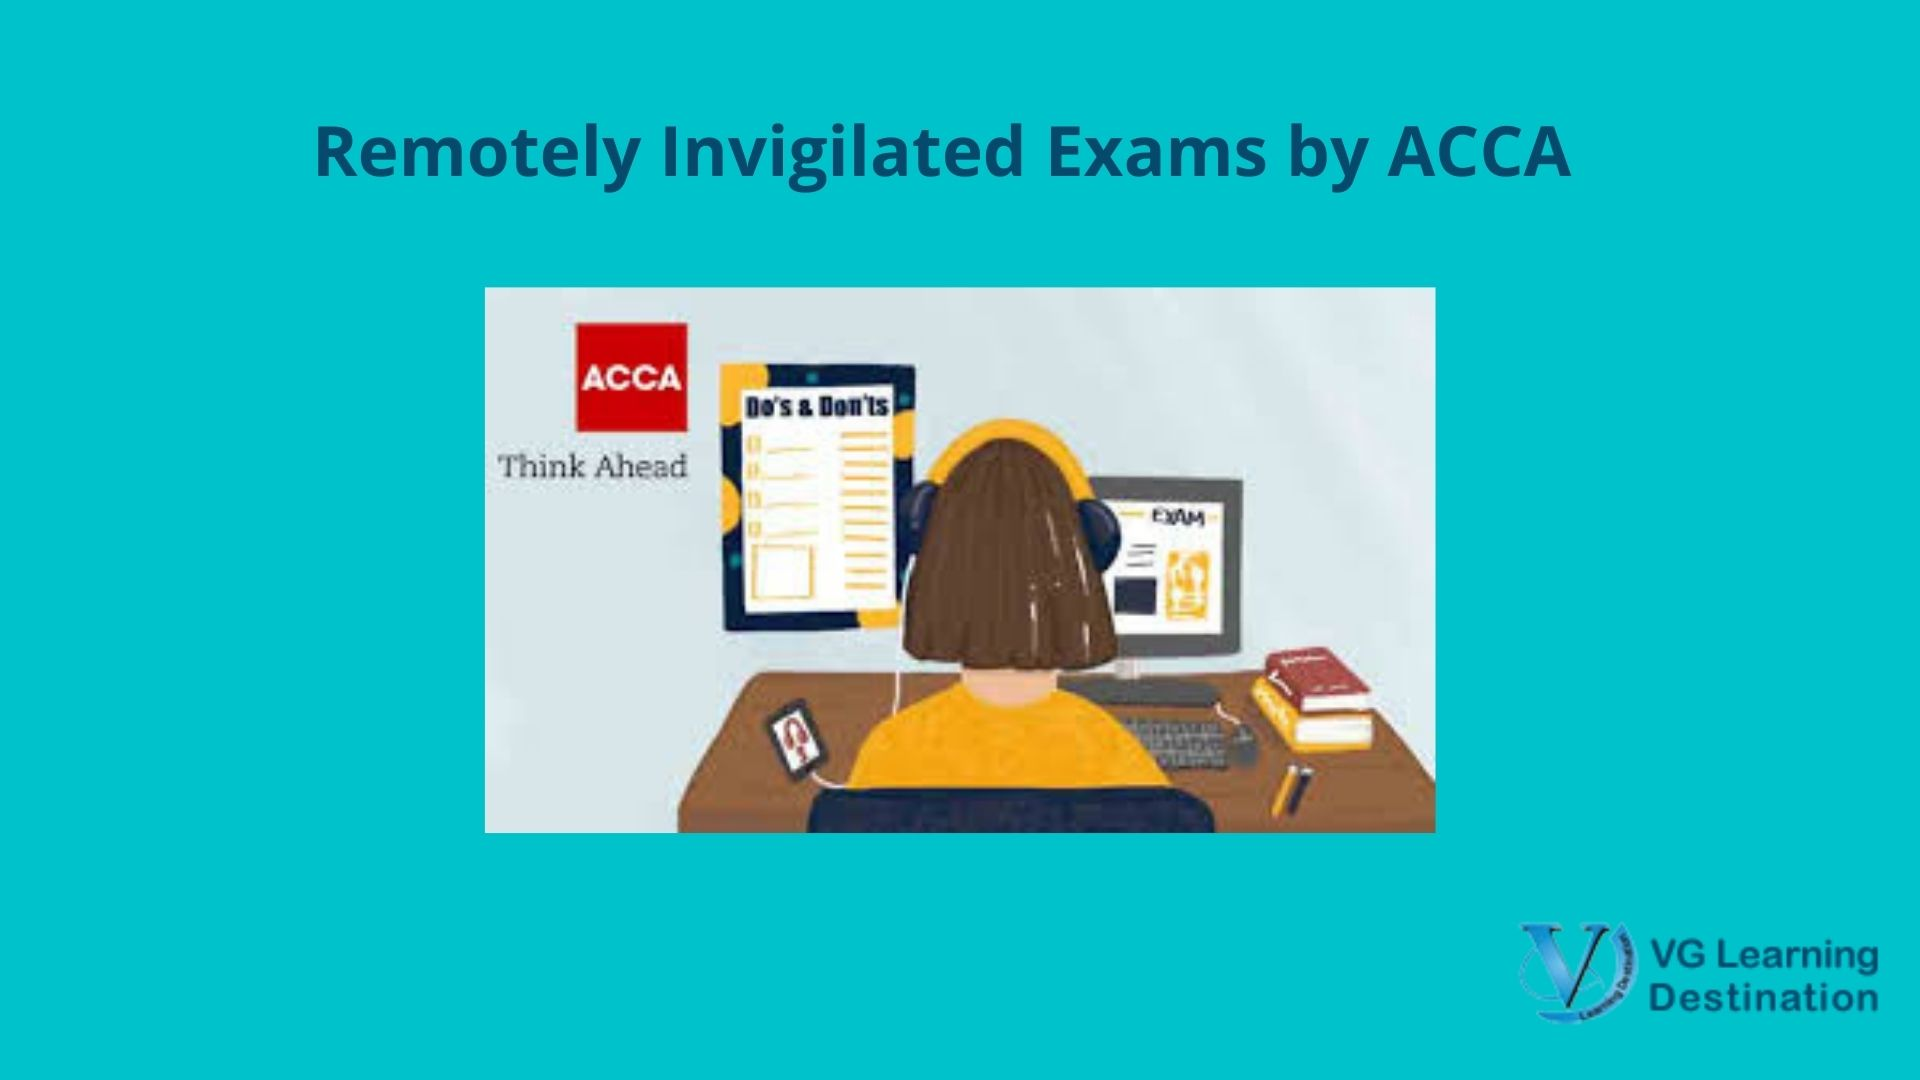 ACCA leads the way by introducing Remote Invigilation Computer Based Exams!